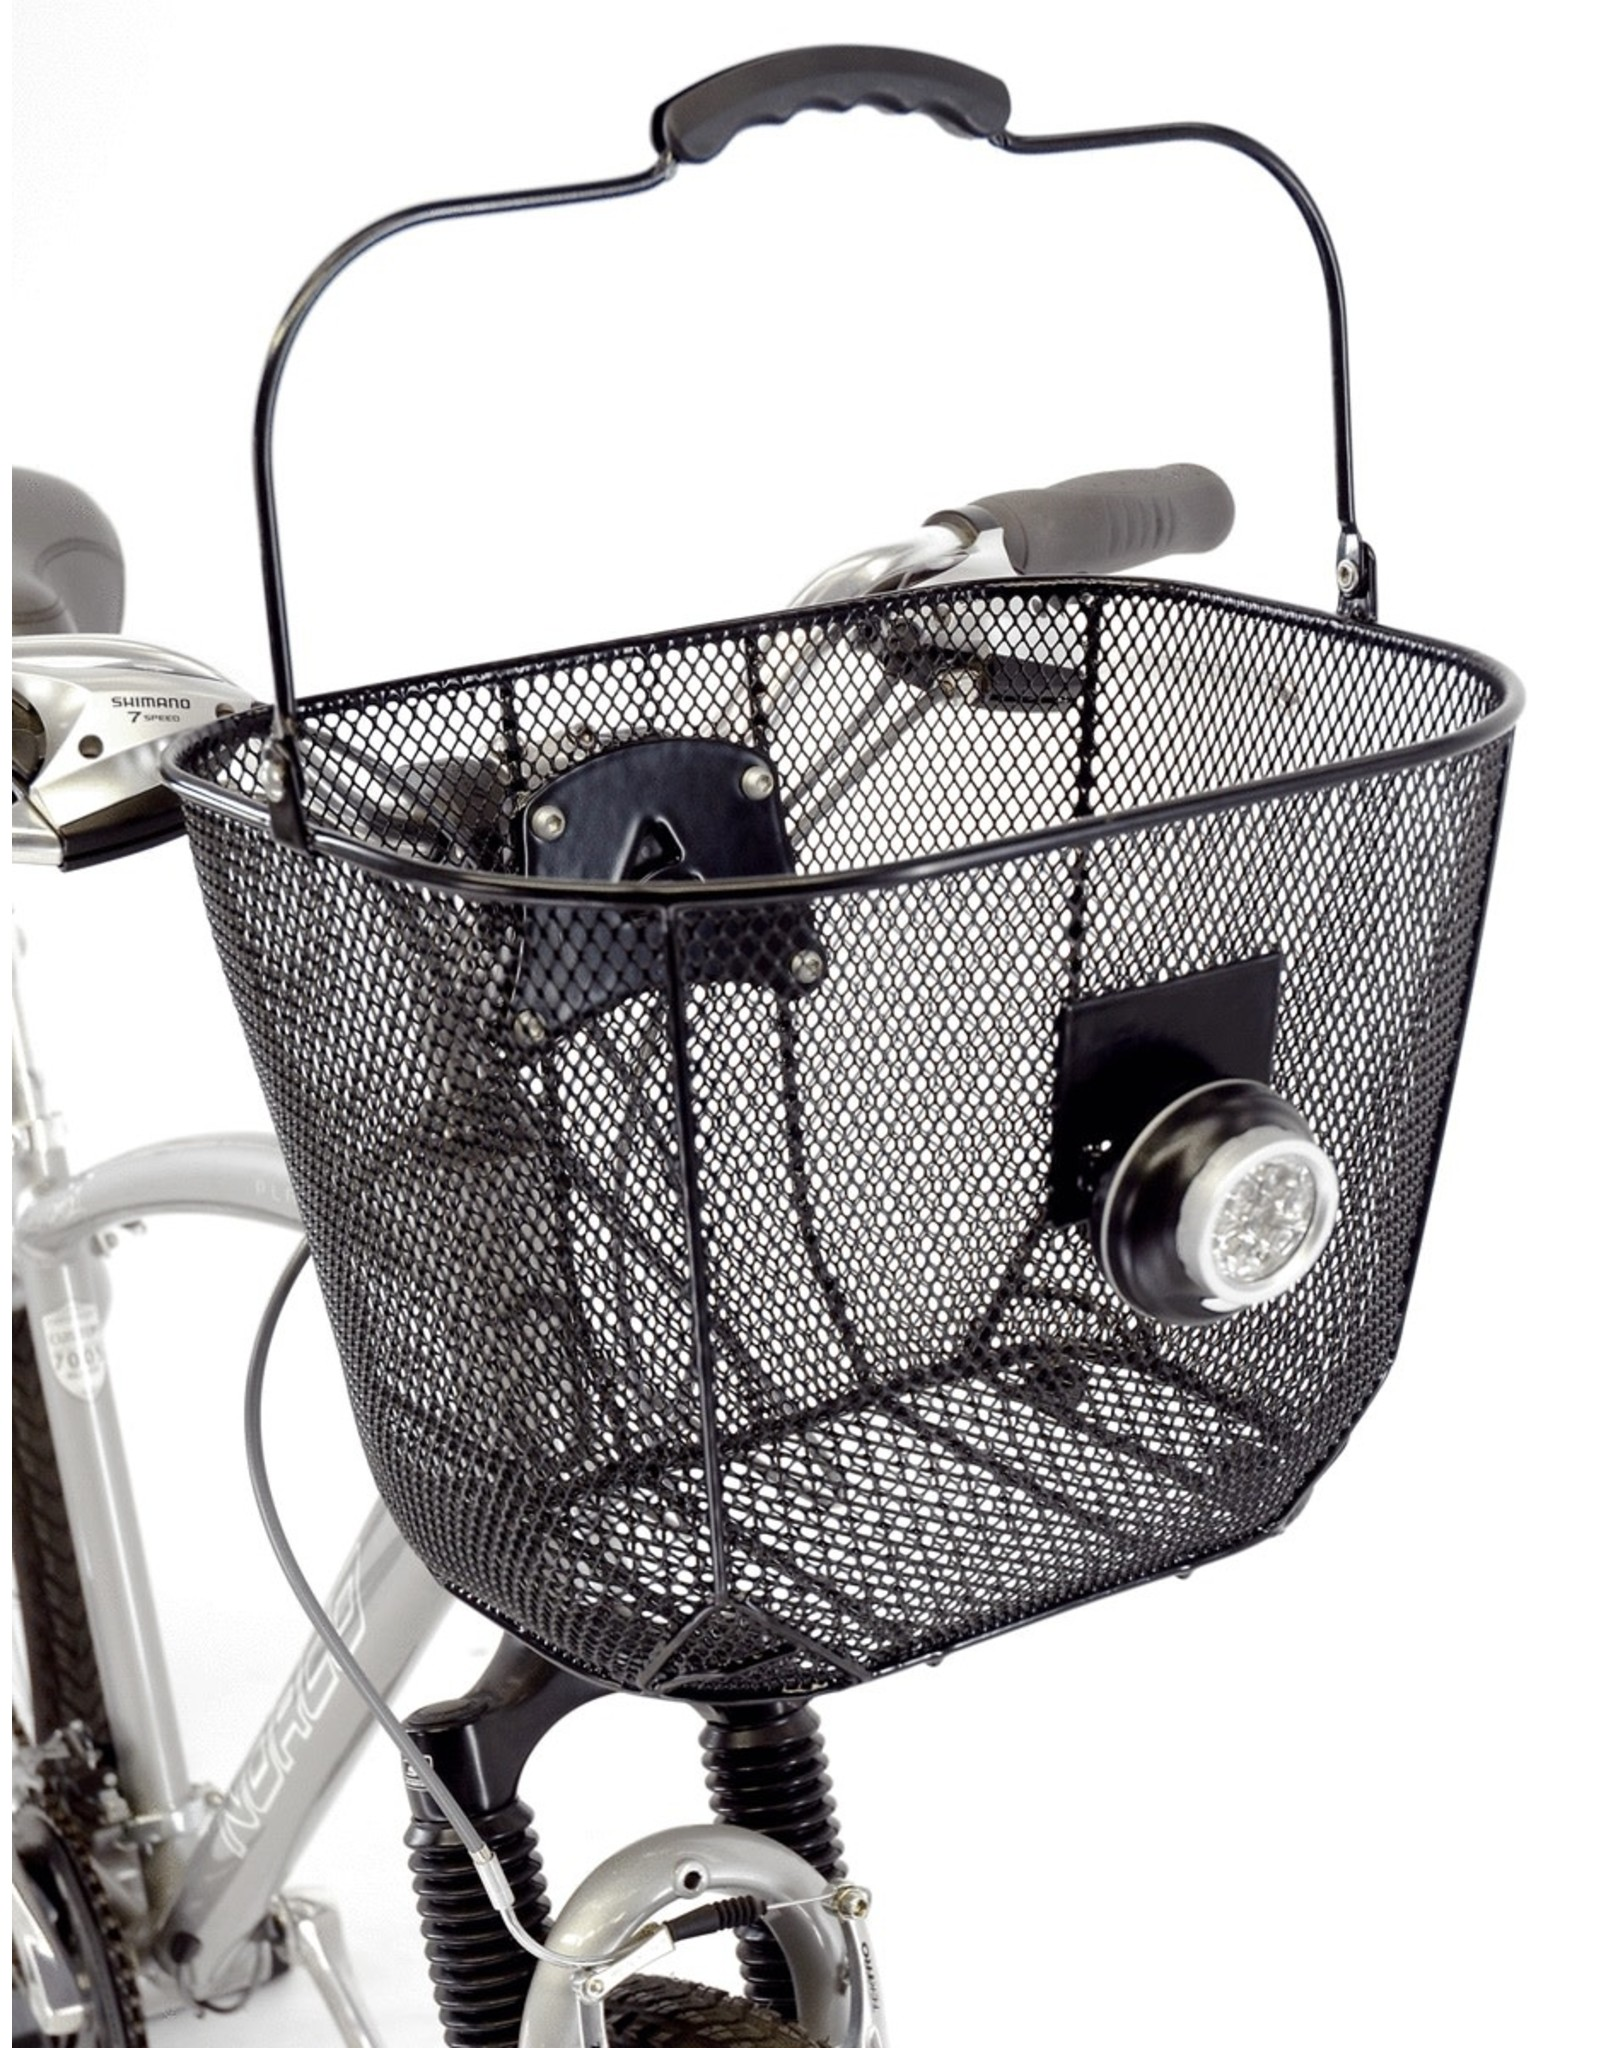 AXIOM FRESH-MESH BASKET DLX BLACK